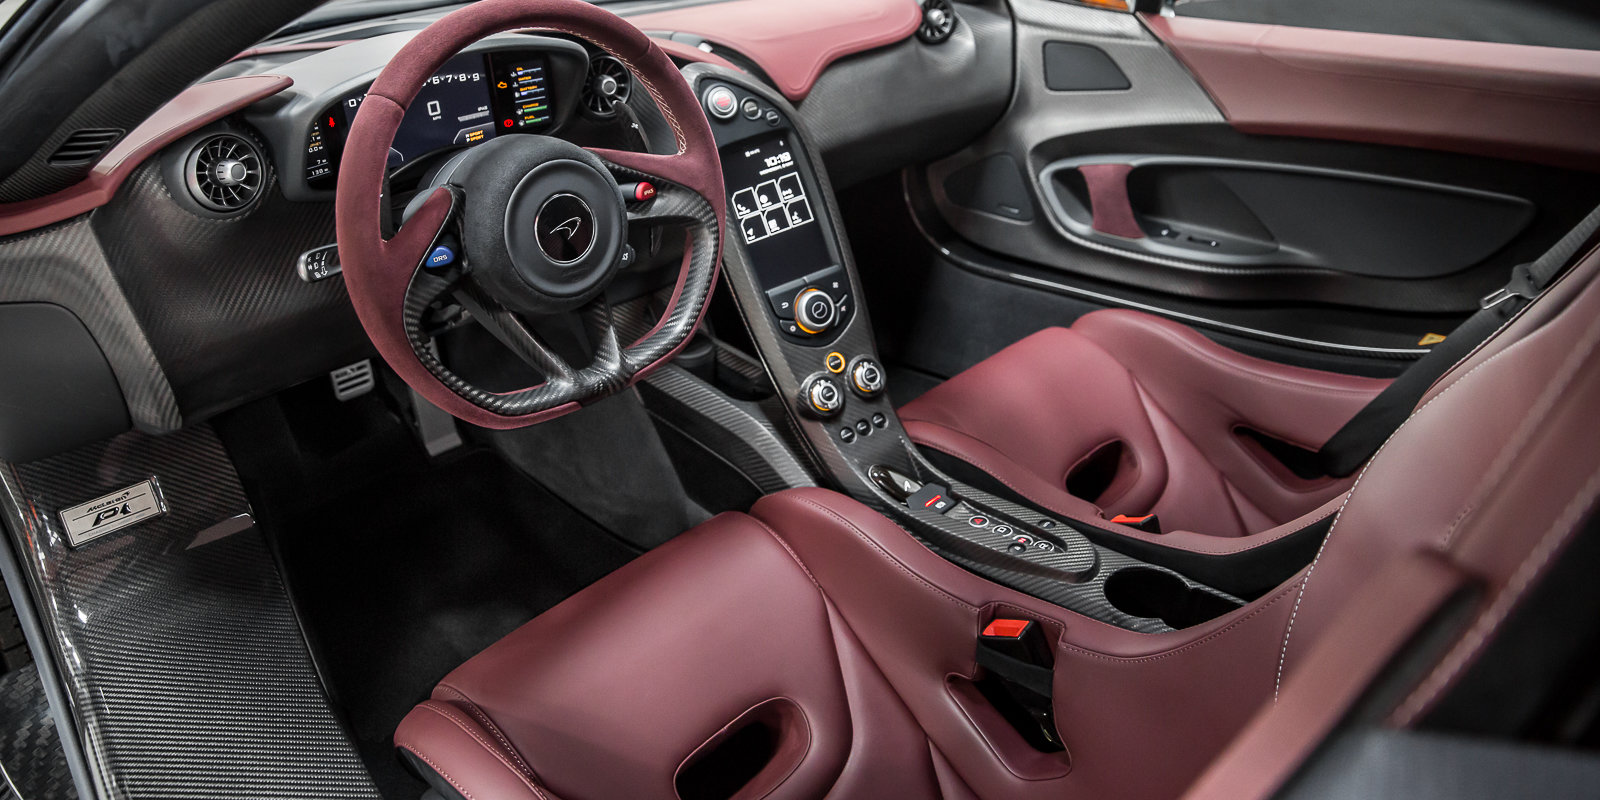 2014 McLaren P1 - UK Supplied, 1 owner & just had major service For Sale (picture 3 of 6)